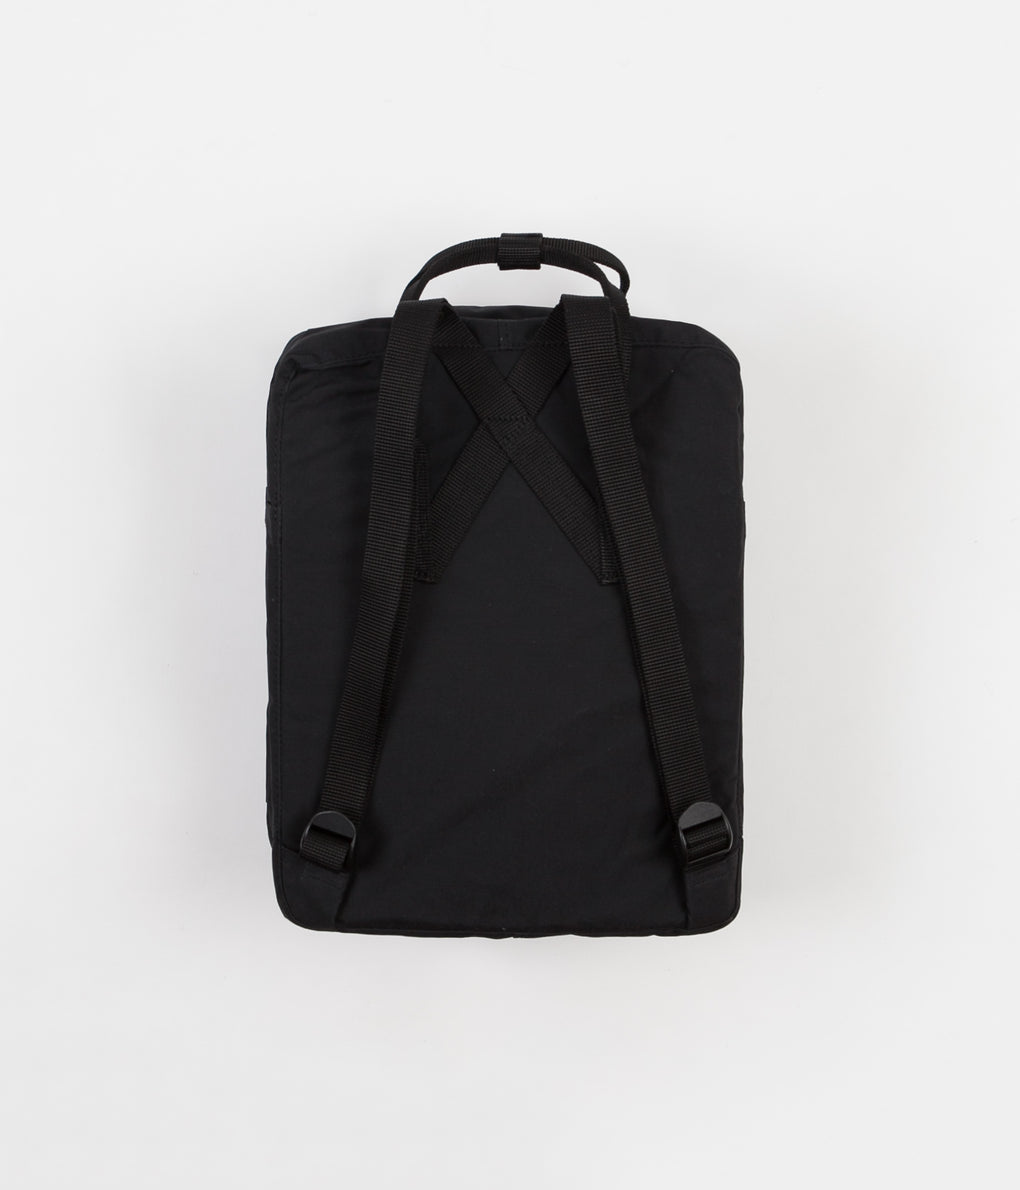 Fjällräven Kånken Backpack - Black